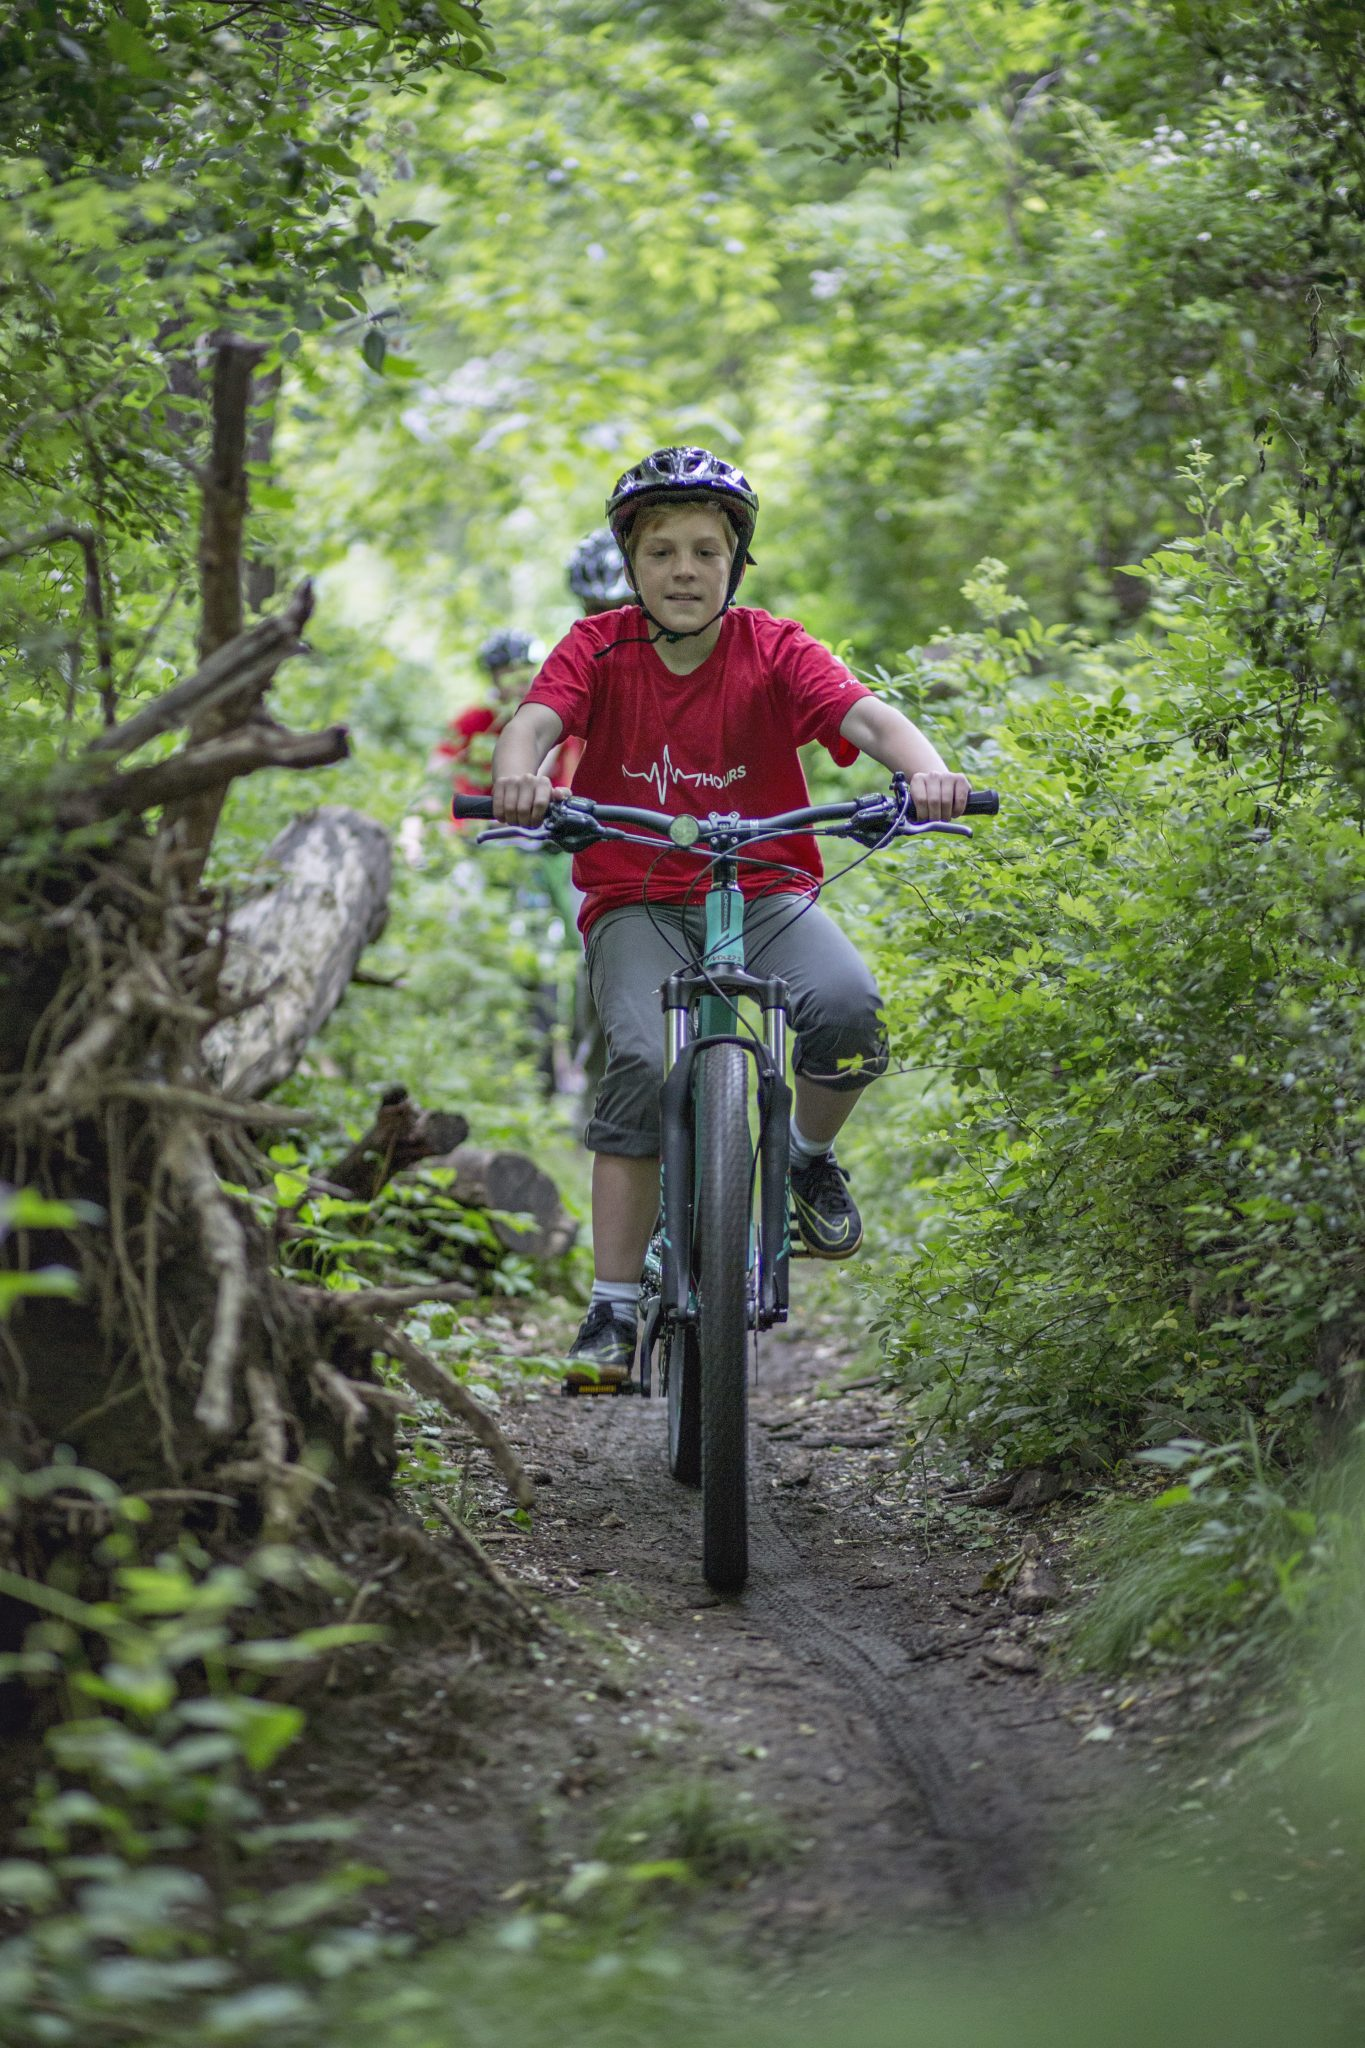 MTB is fun for all ages, right Jakov?